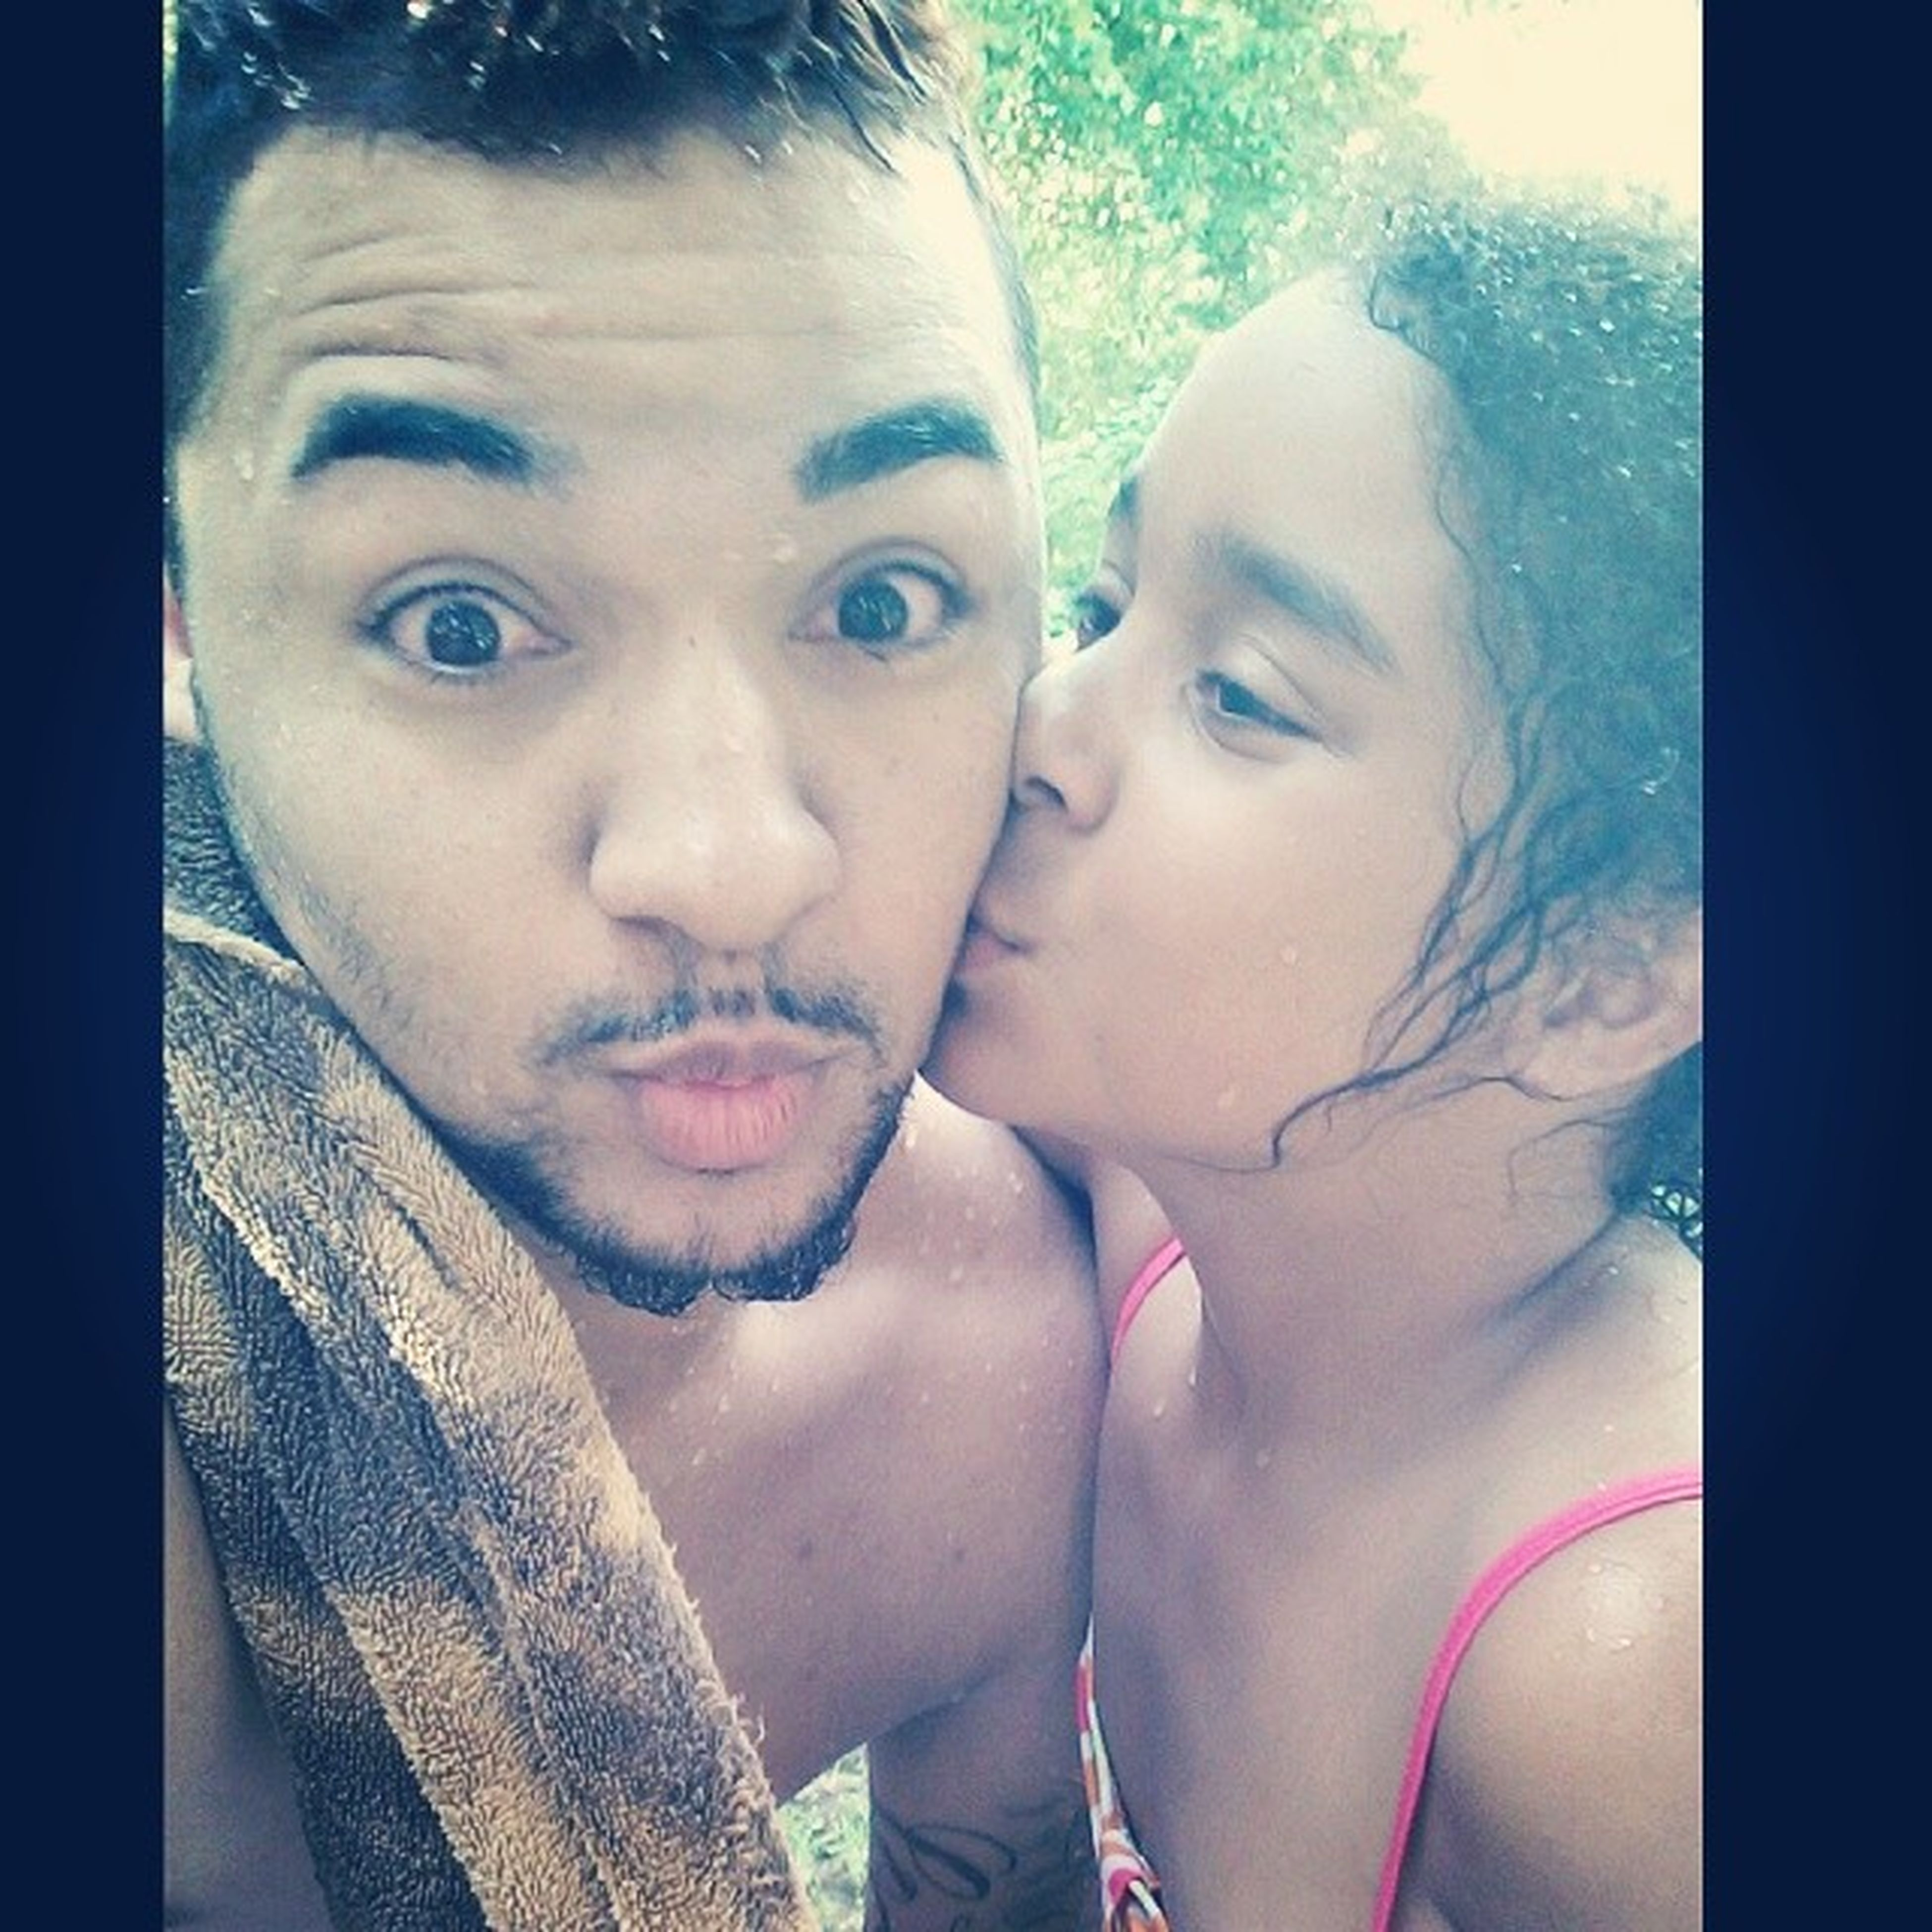 Me and sis at the pool :) Turndownforwhat LighskinLove EyesRed IGotAKiss :)